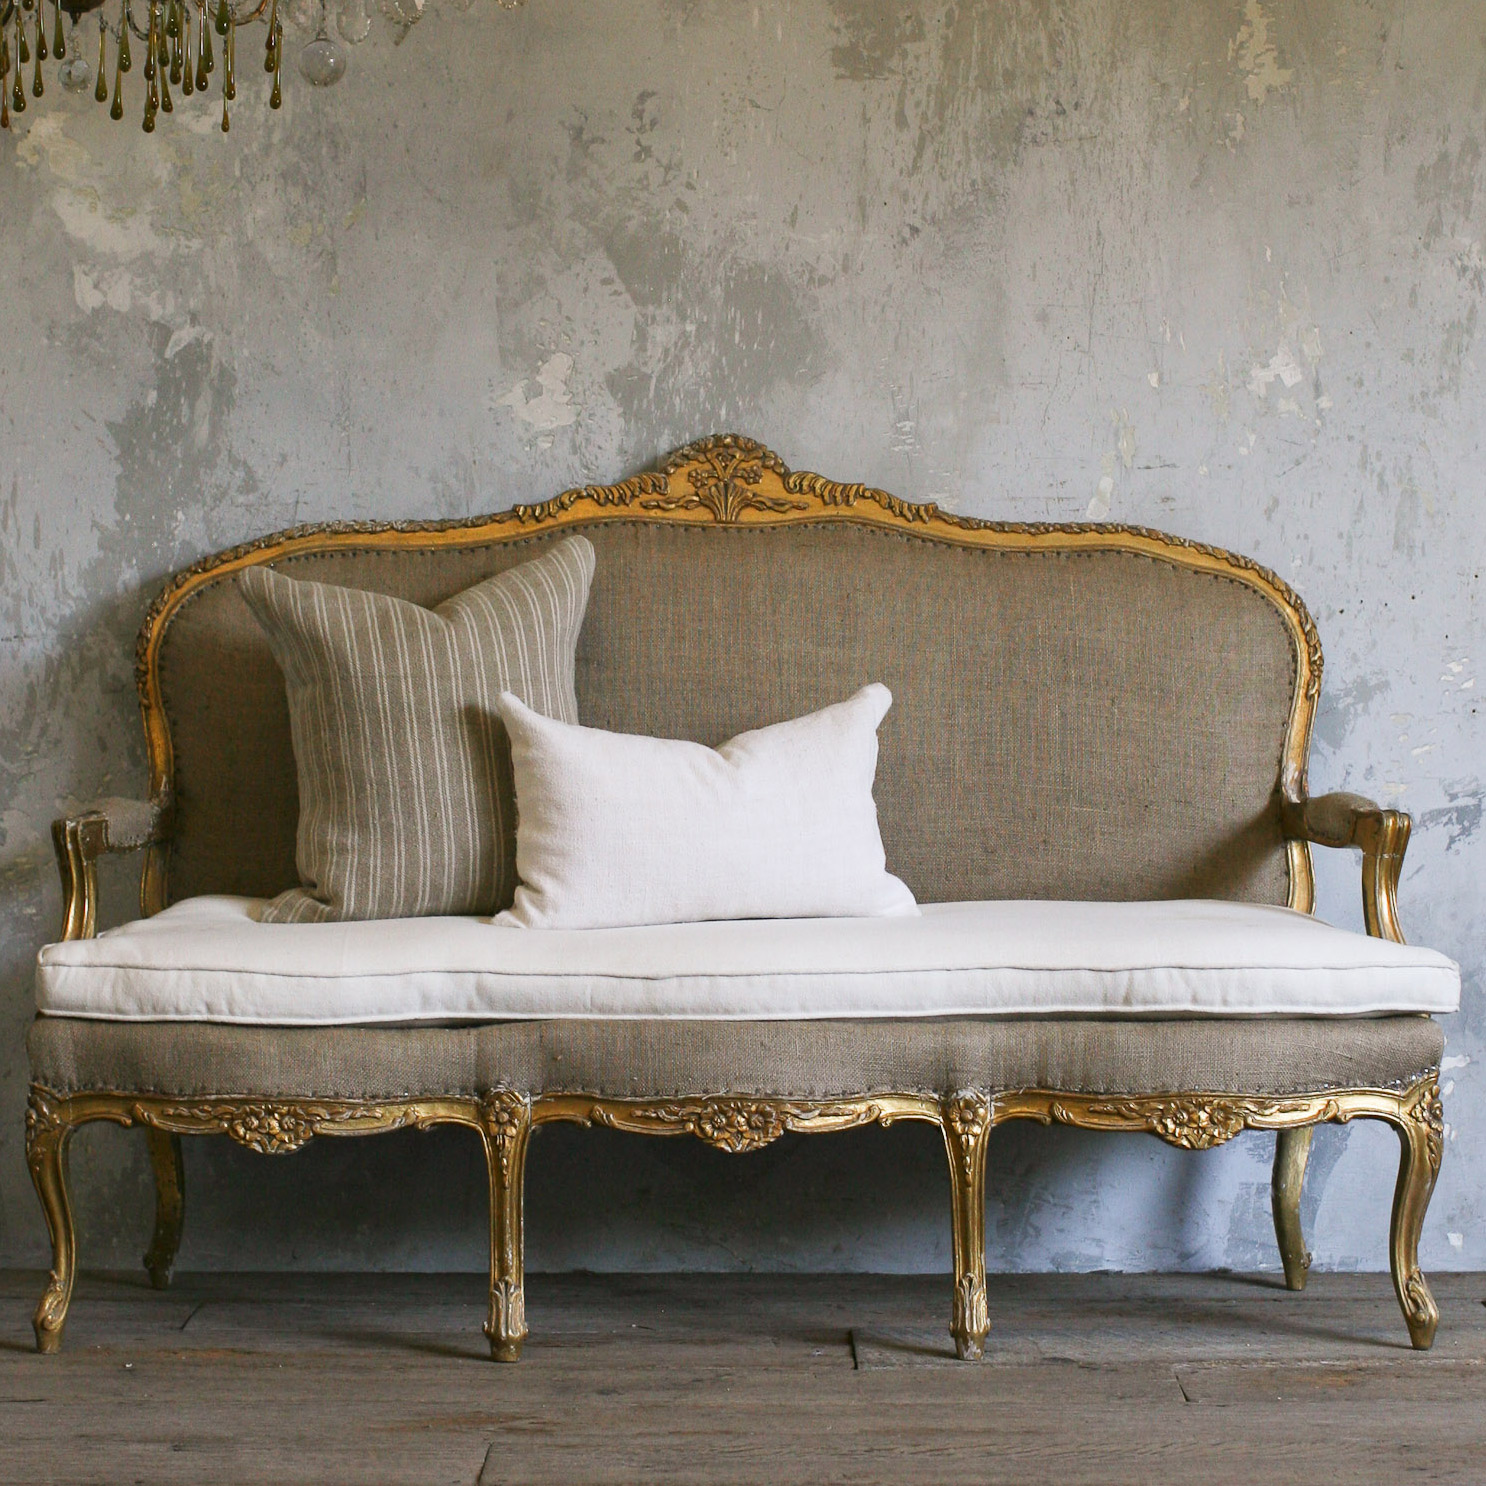 Best Of Antique Couch Sofa And Settee Styles Bring Back The Good Old Days 14 Best Of